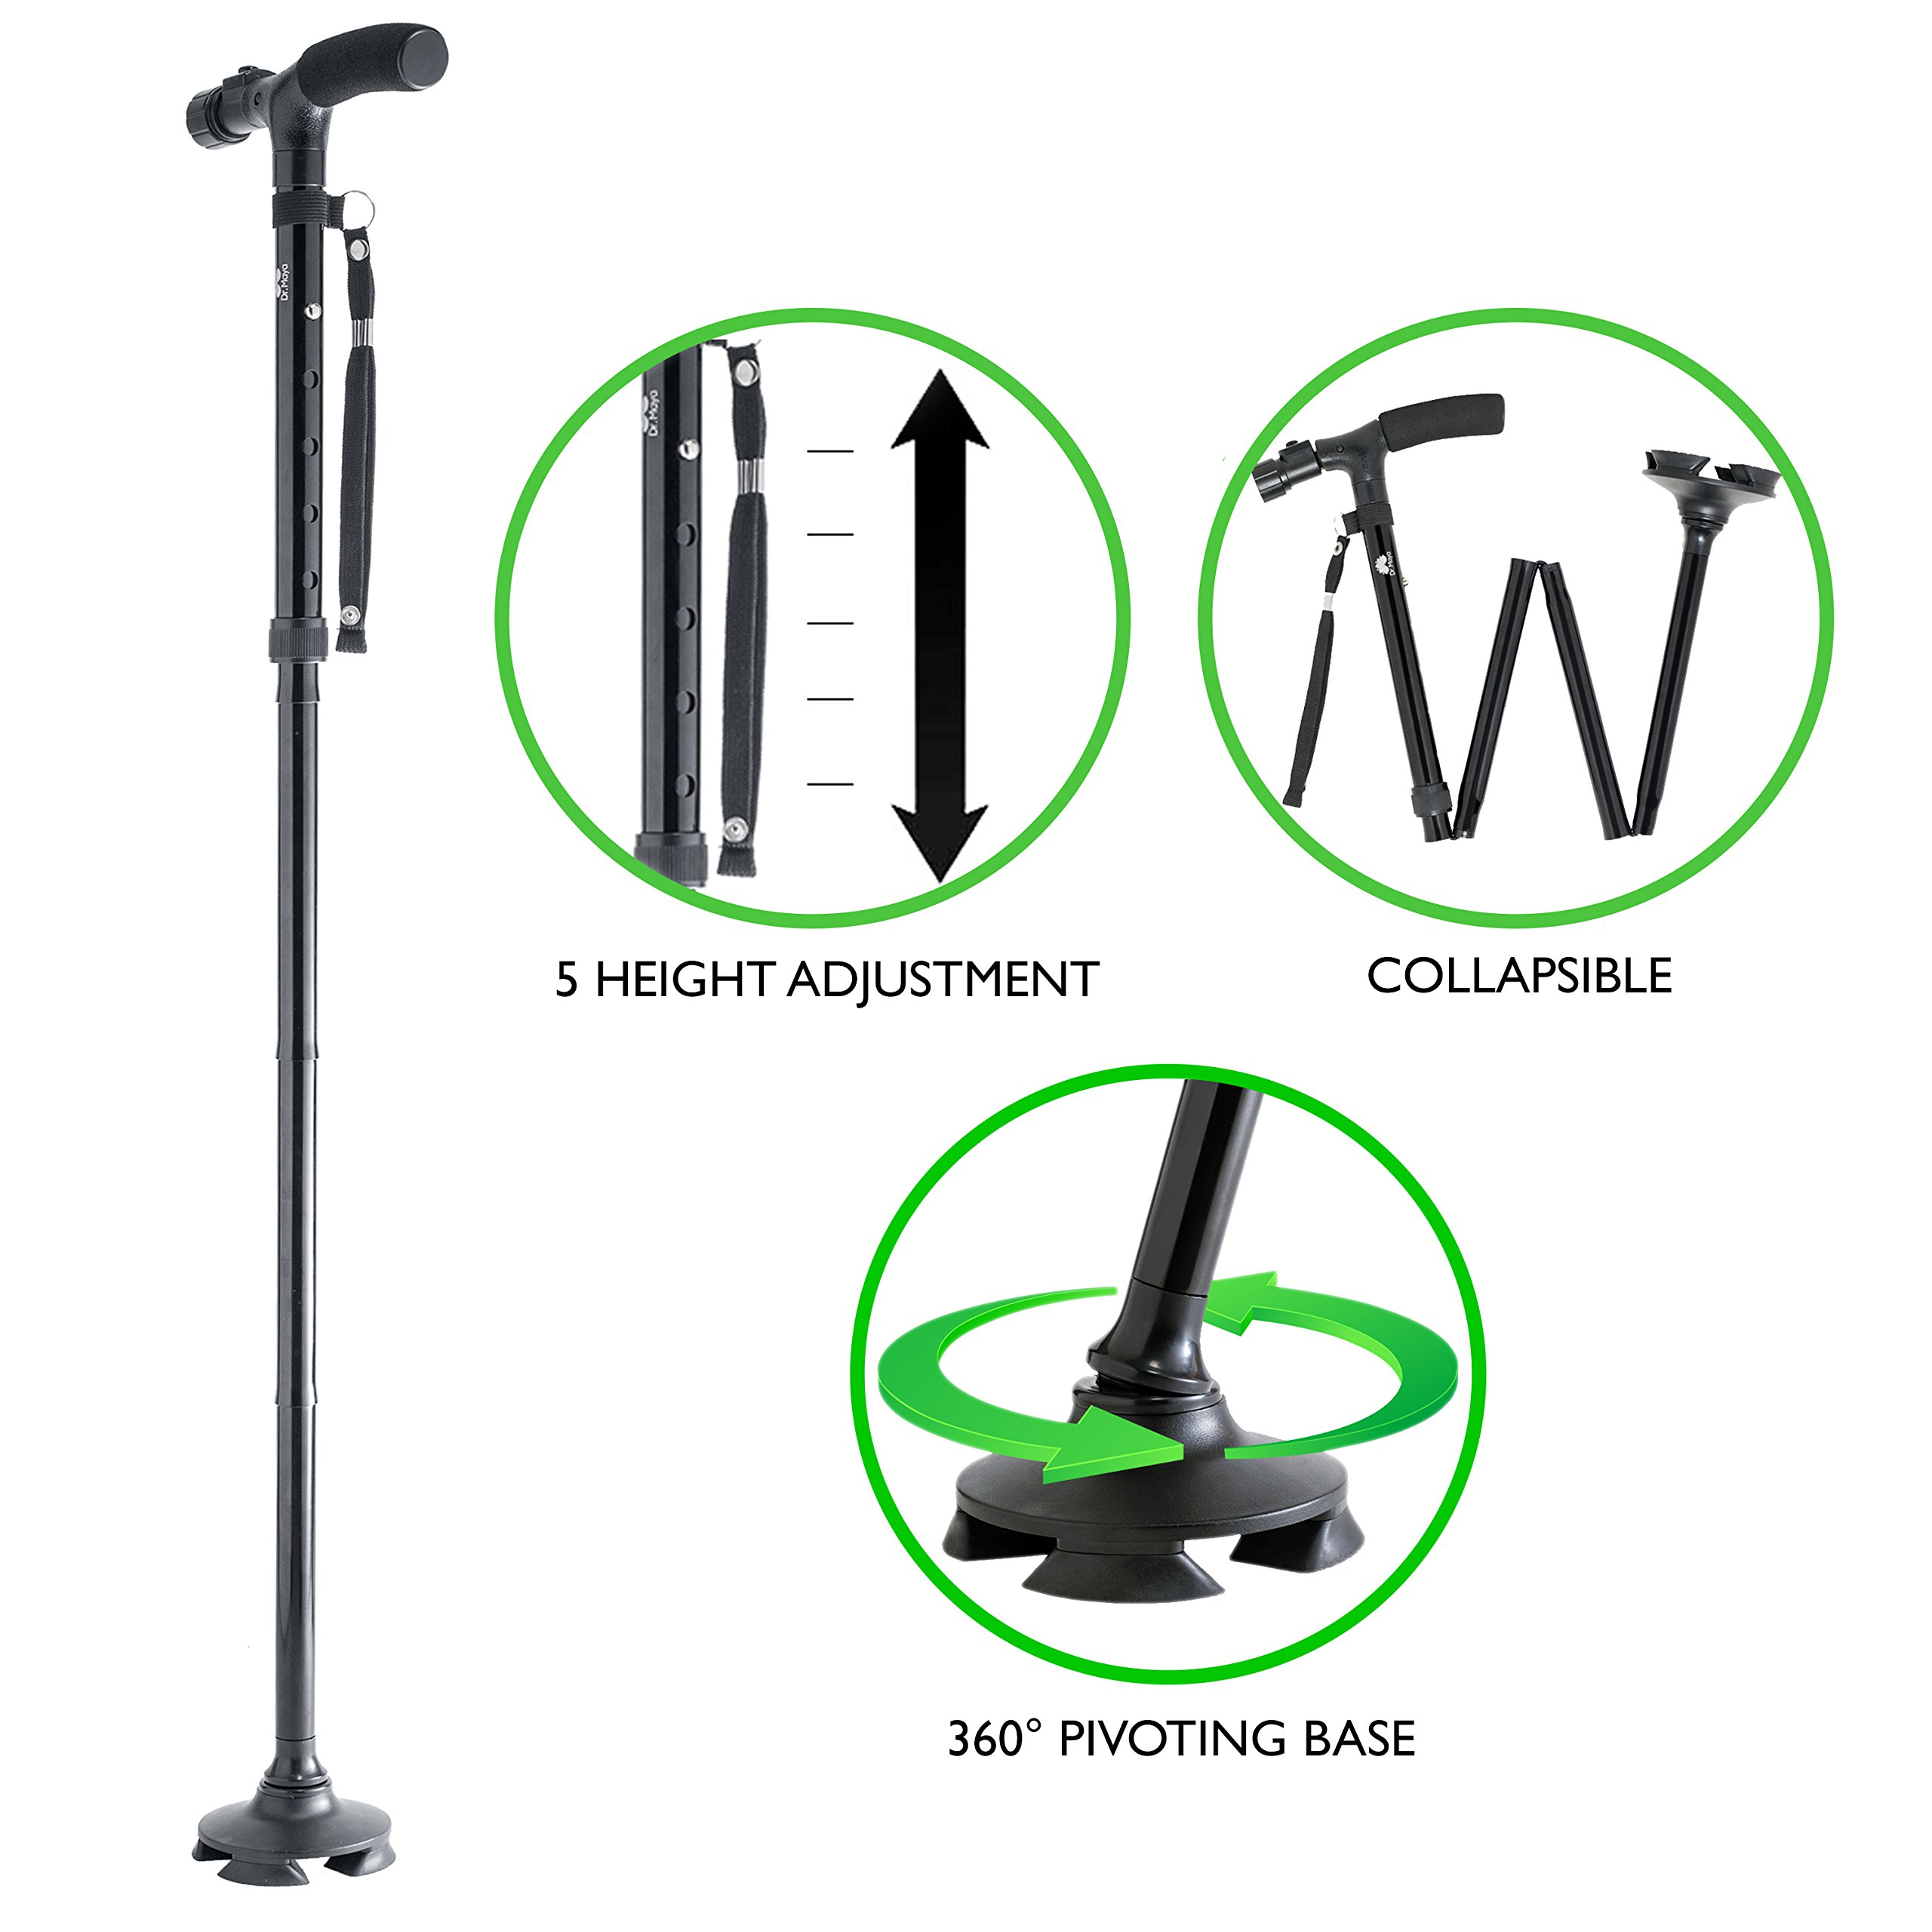 Walking Cane by Dr. Maya with Free Cane Tips & LED Lights - Lightweight, Adjustable, Foldable, Pivoting Base, Quad Travel Balance Stick Support for Elderly Men and Women - Walker Gift for Seniors! by Dr. Maya (Image #3)